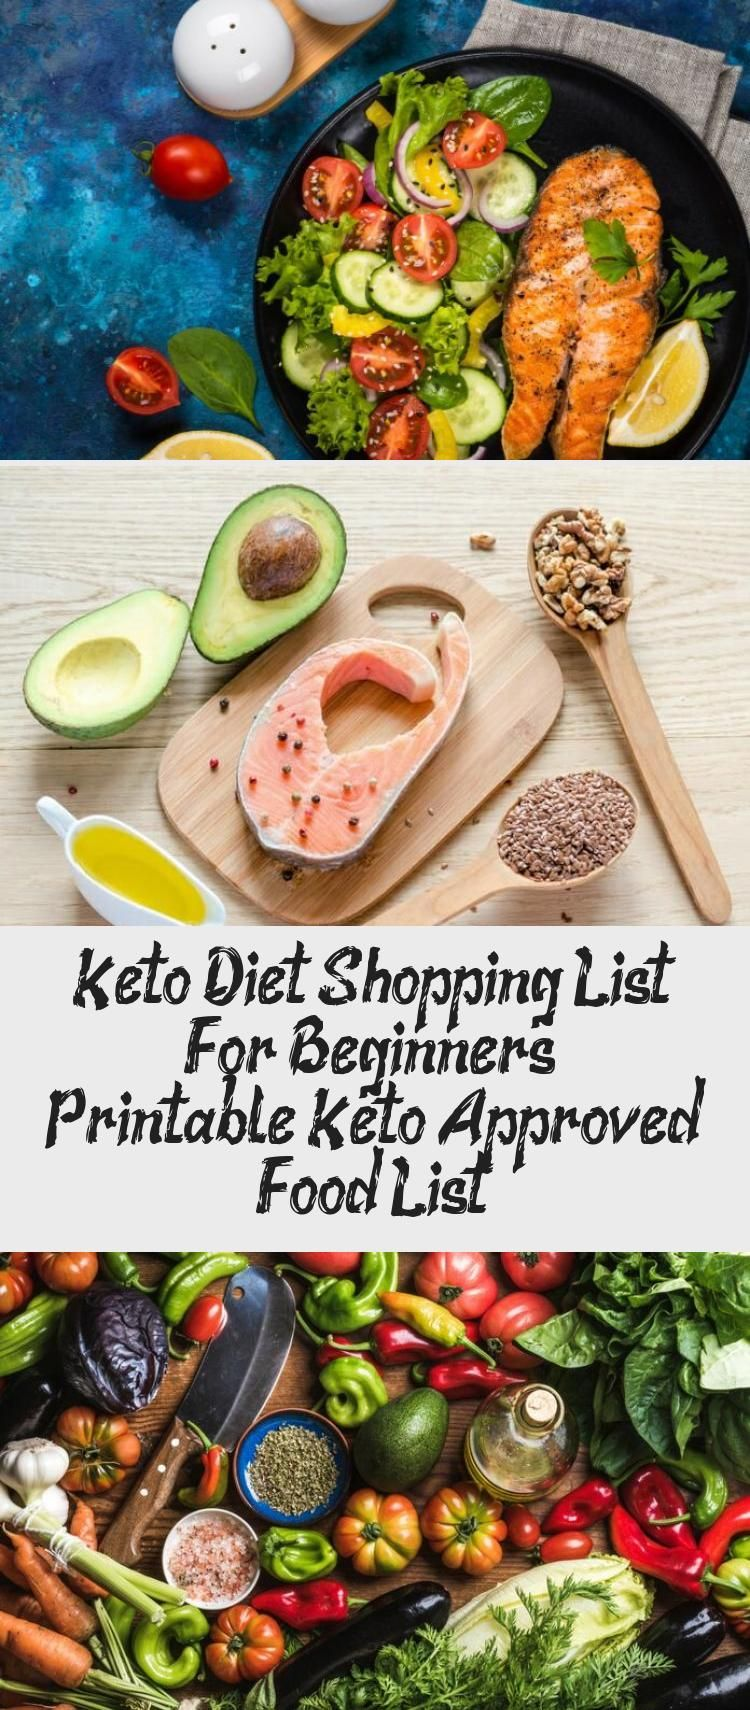 The complete list of keto foods to eat on a ketogenic diet